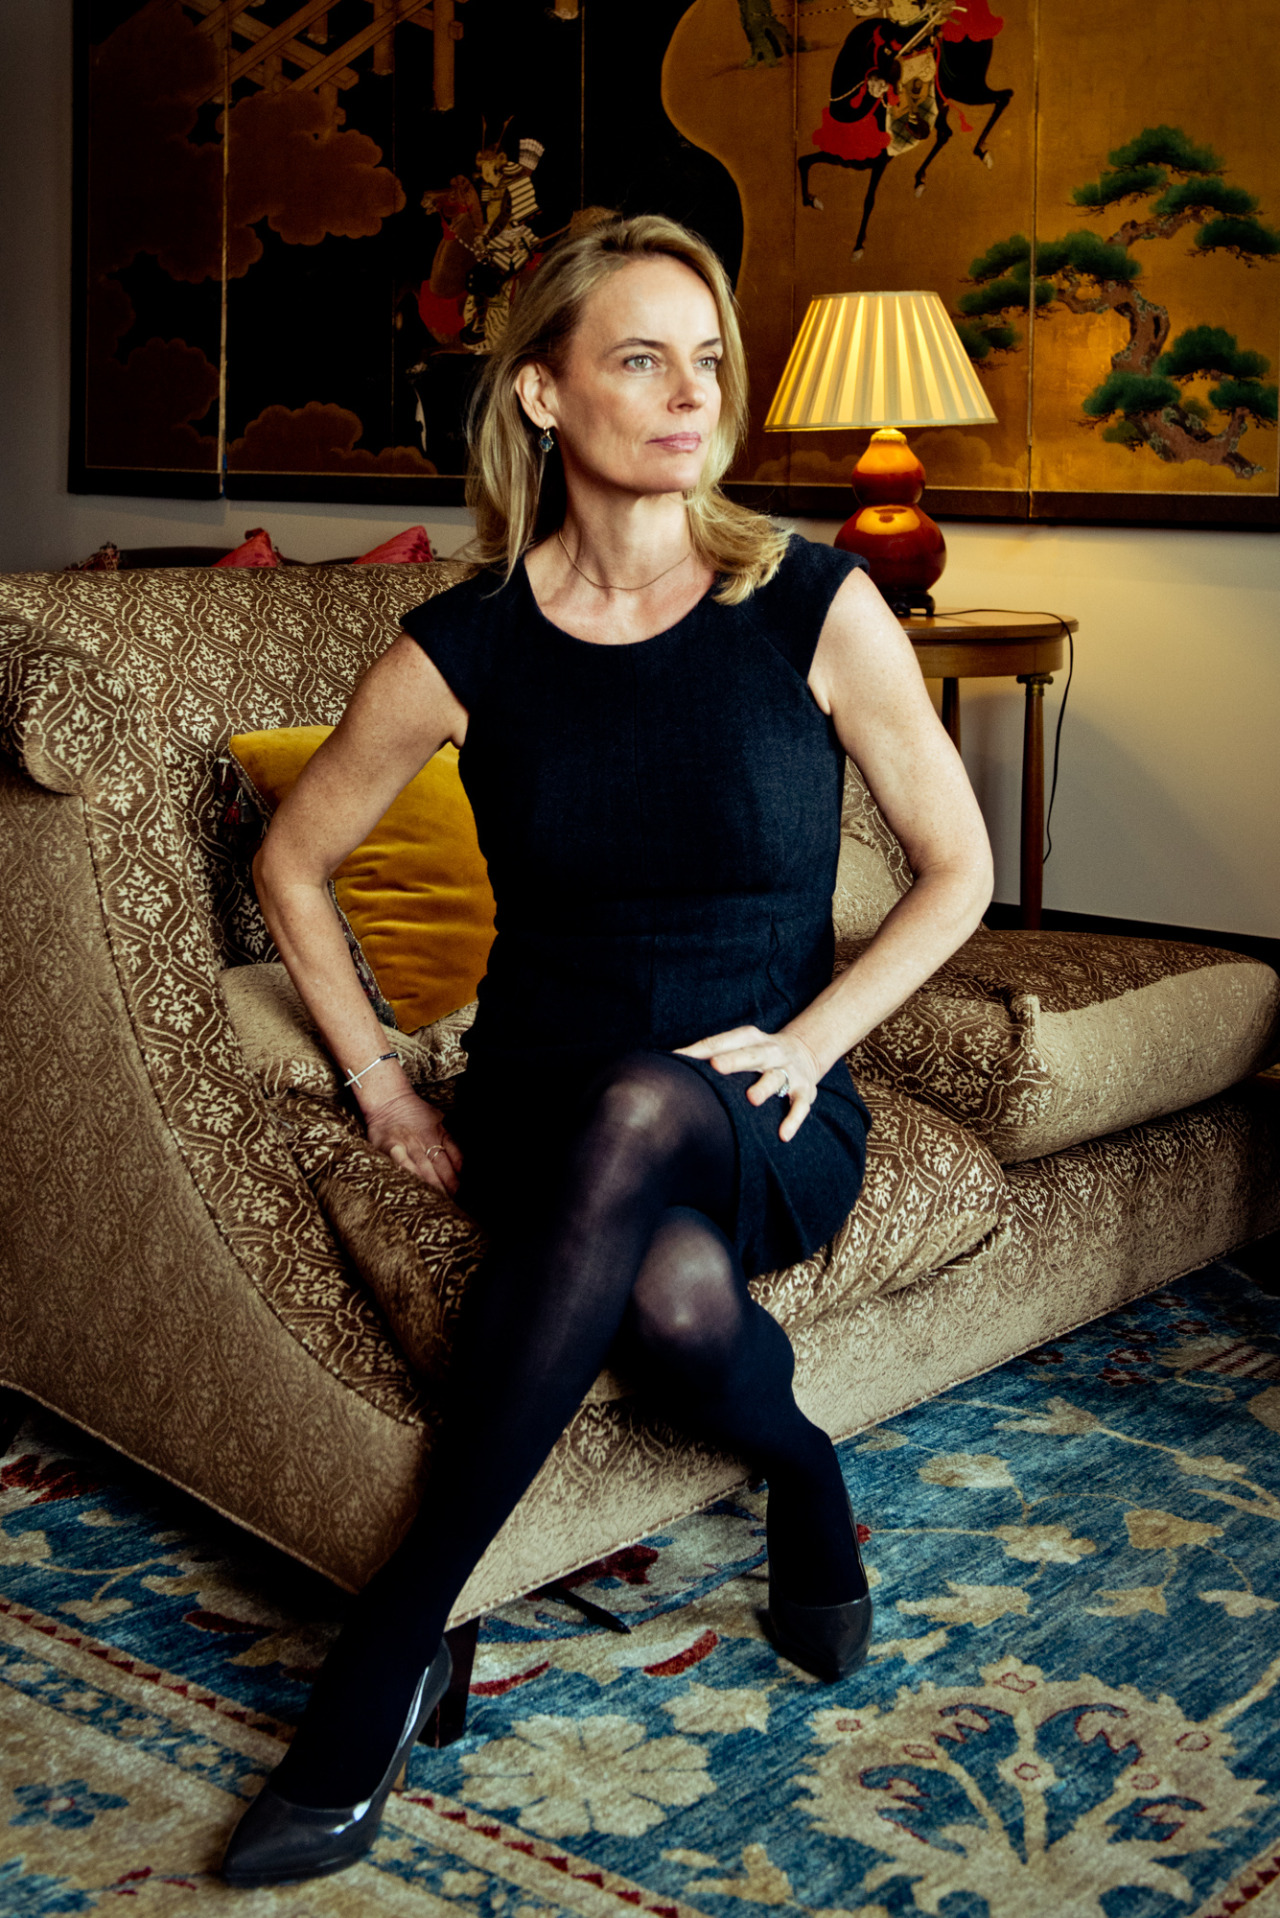 gabherman :     Author Maureen Sherry, shot for  The New York Times . Look forward to reading her new book, Opening Belle, about a female working on Wall St, especially after my Michael Lewis binge.